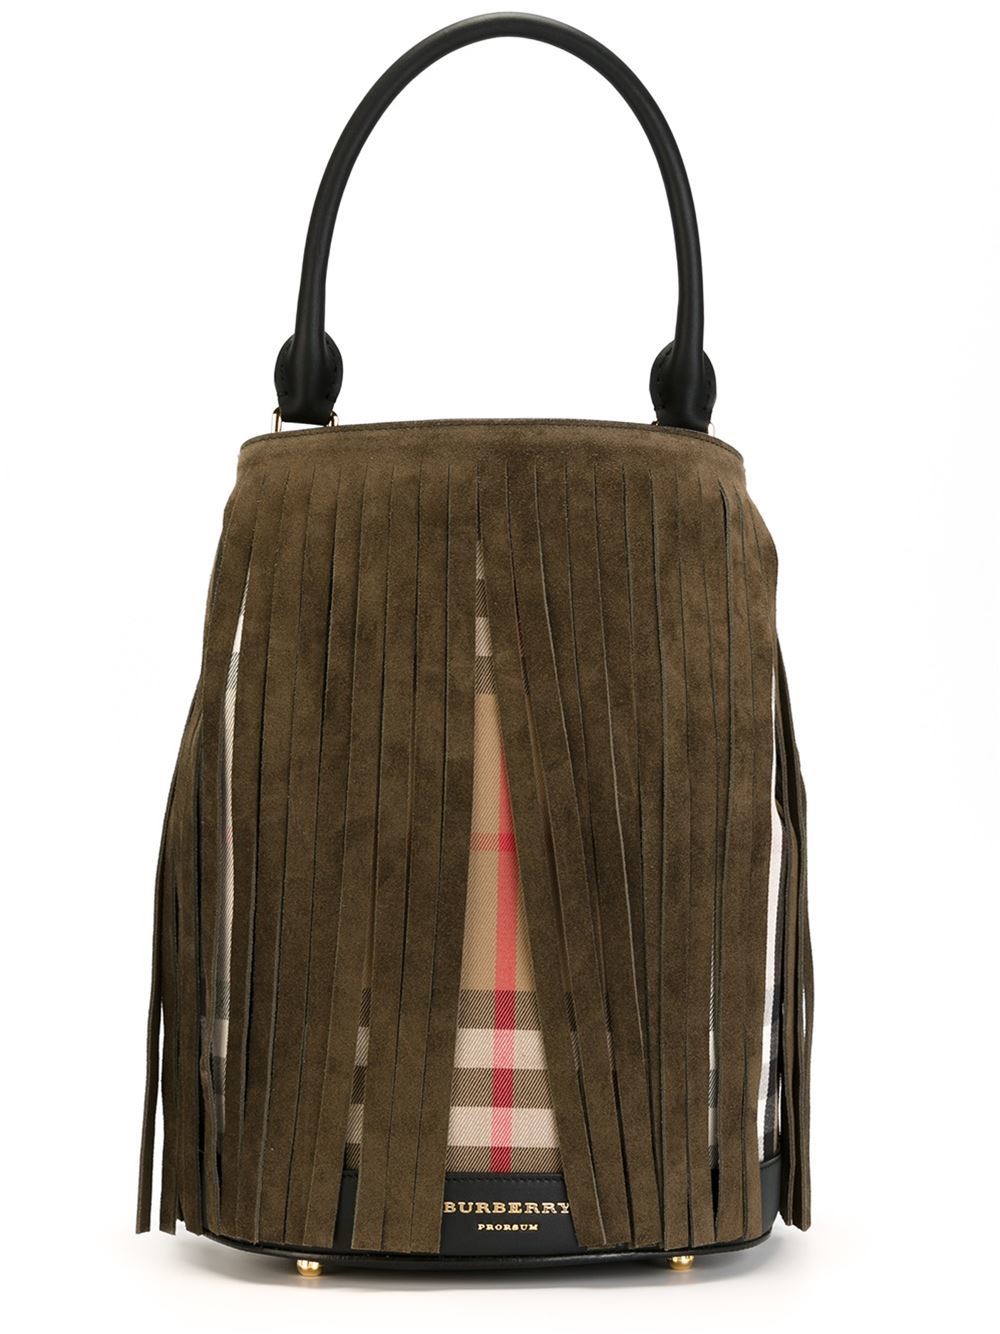 Burberry Prorsum House Check Fringed Bucket Tote in Green (Black)